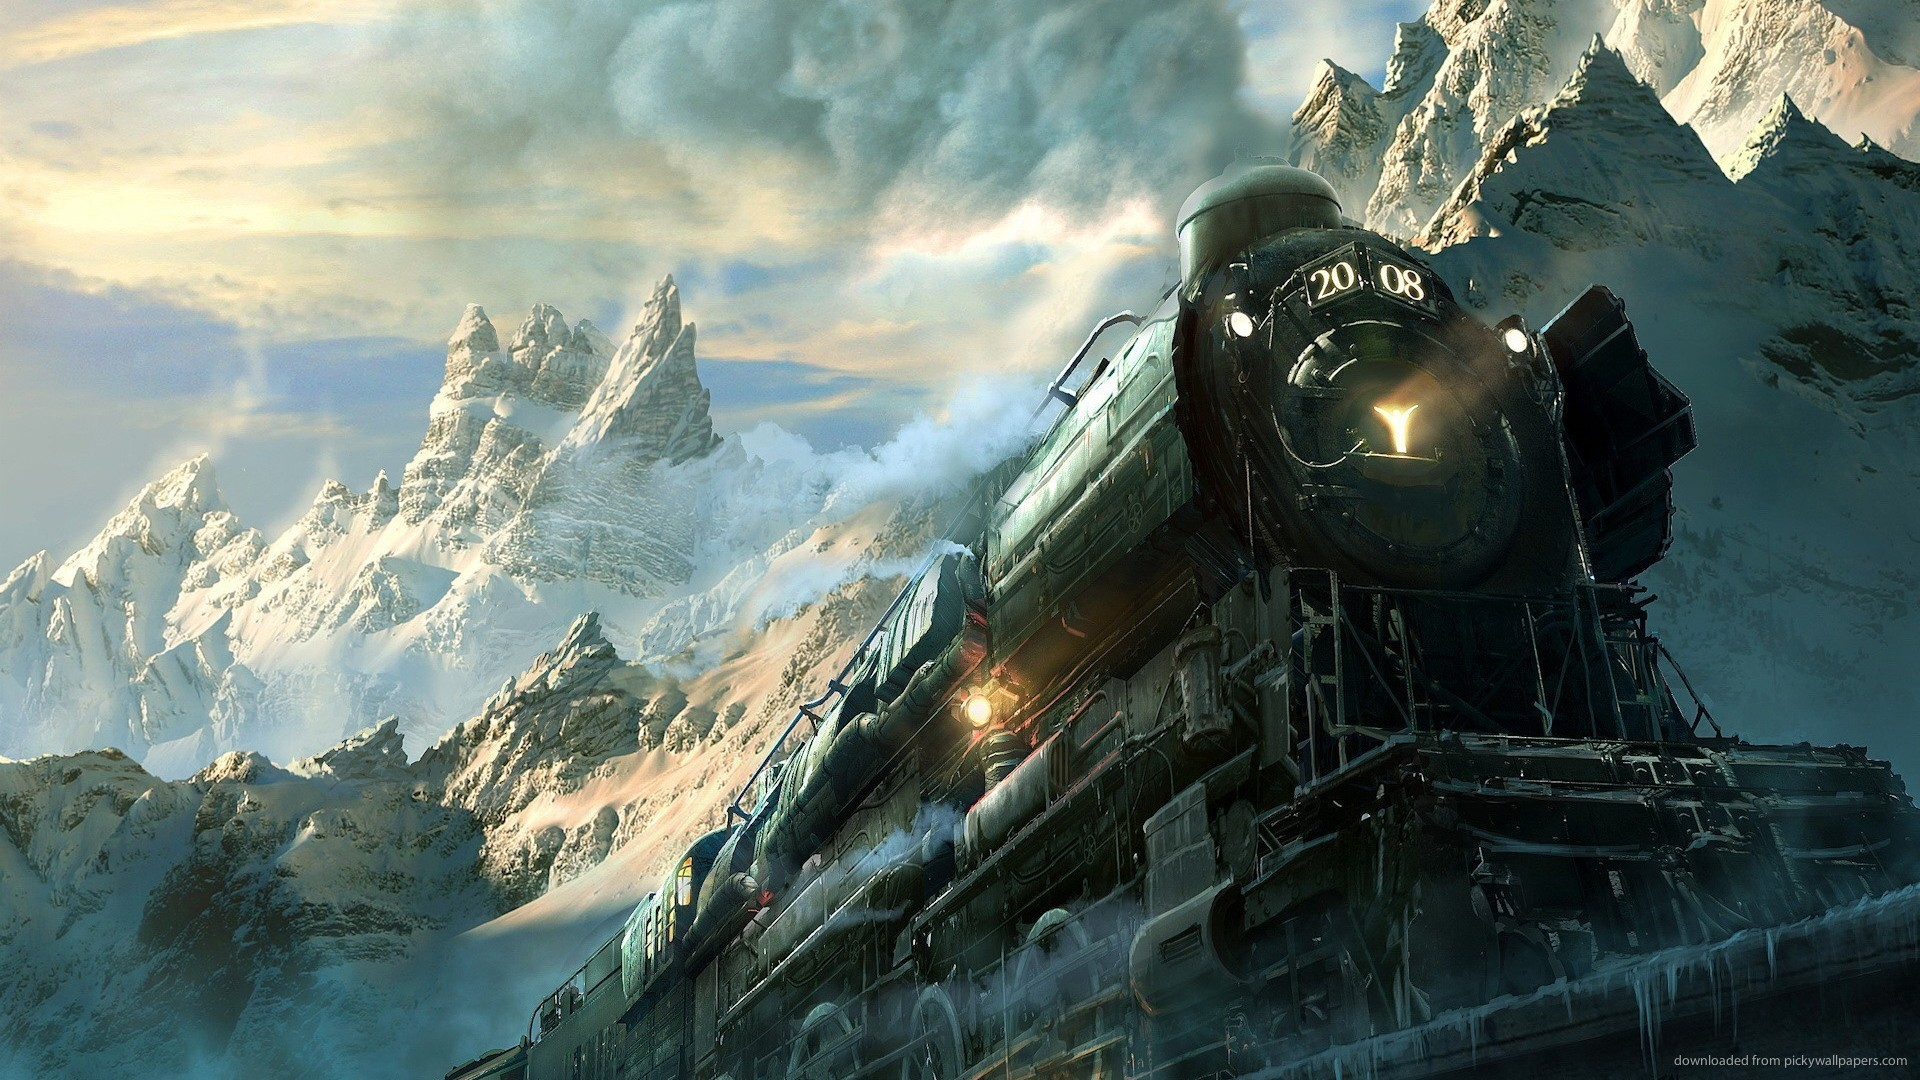 Blackberry iPad Epic Train Art Screensaver For Kindle3 And DX 1920x1080